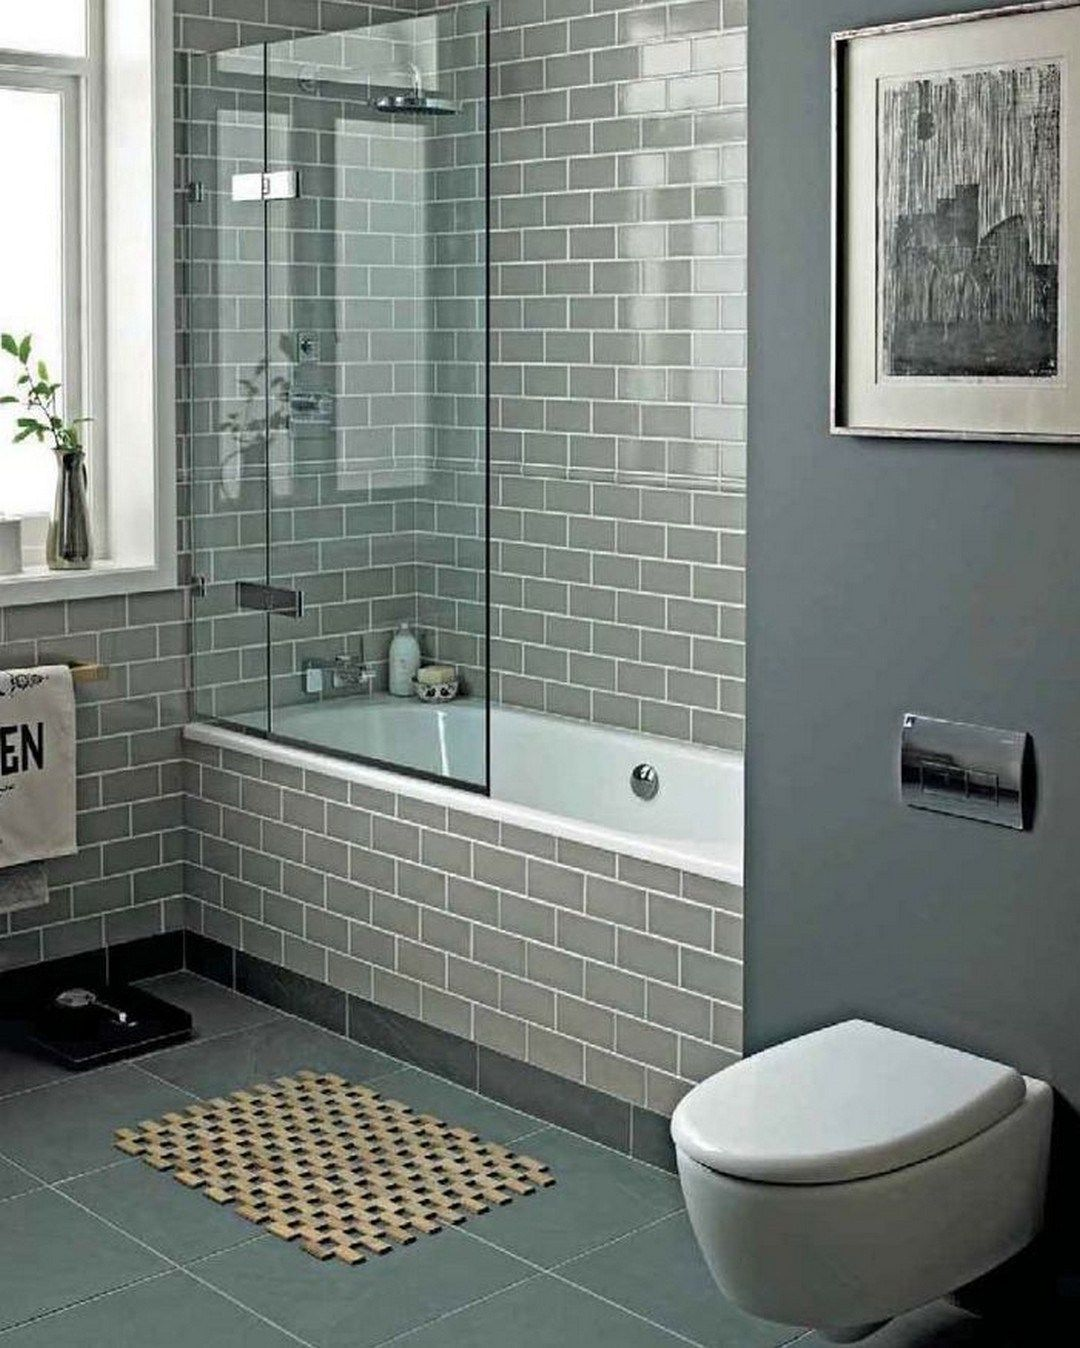 Small Bathroom Remodel Ideas For Washing In Style Bathroom Tub - Small bathroom with tub remodel ideas